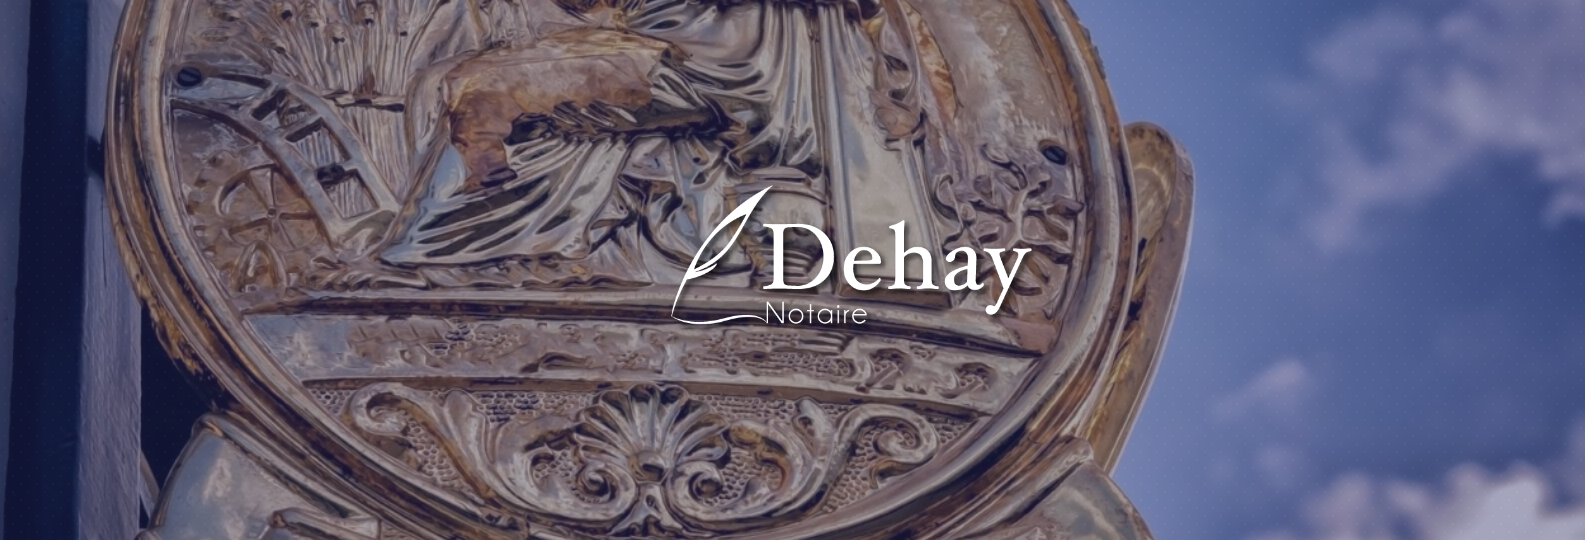 notaire dehay